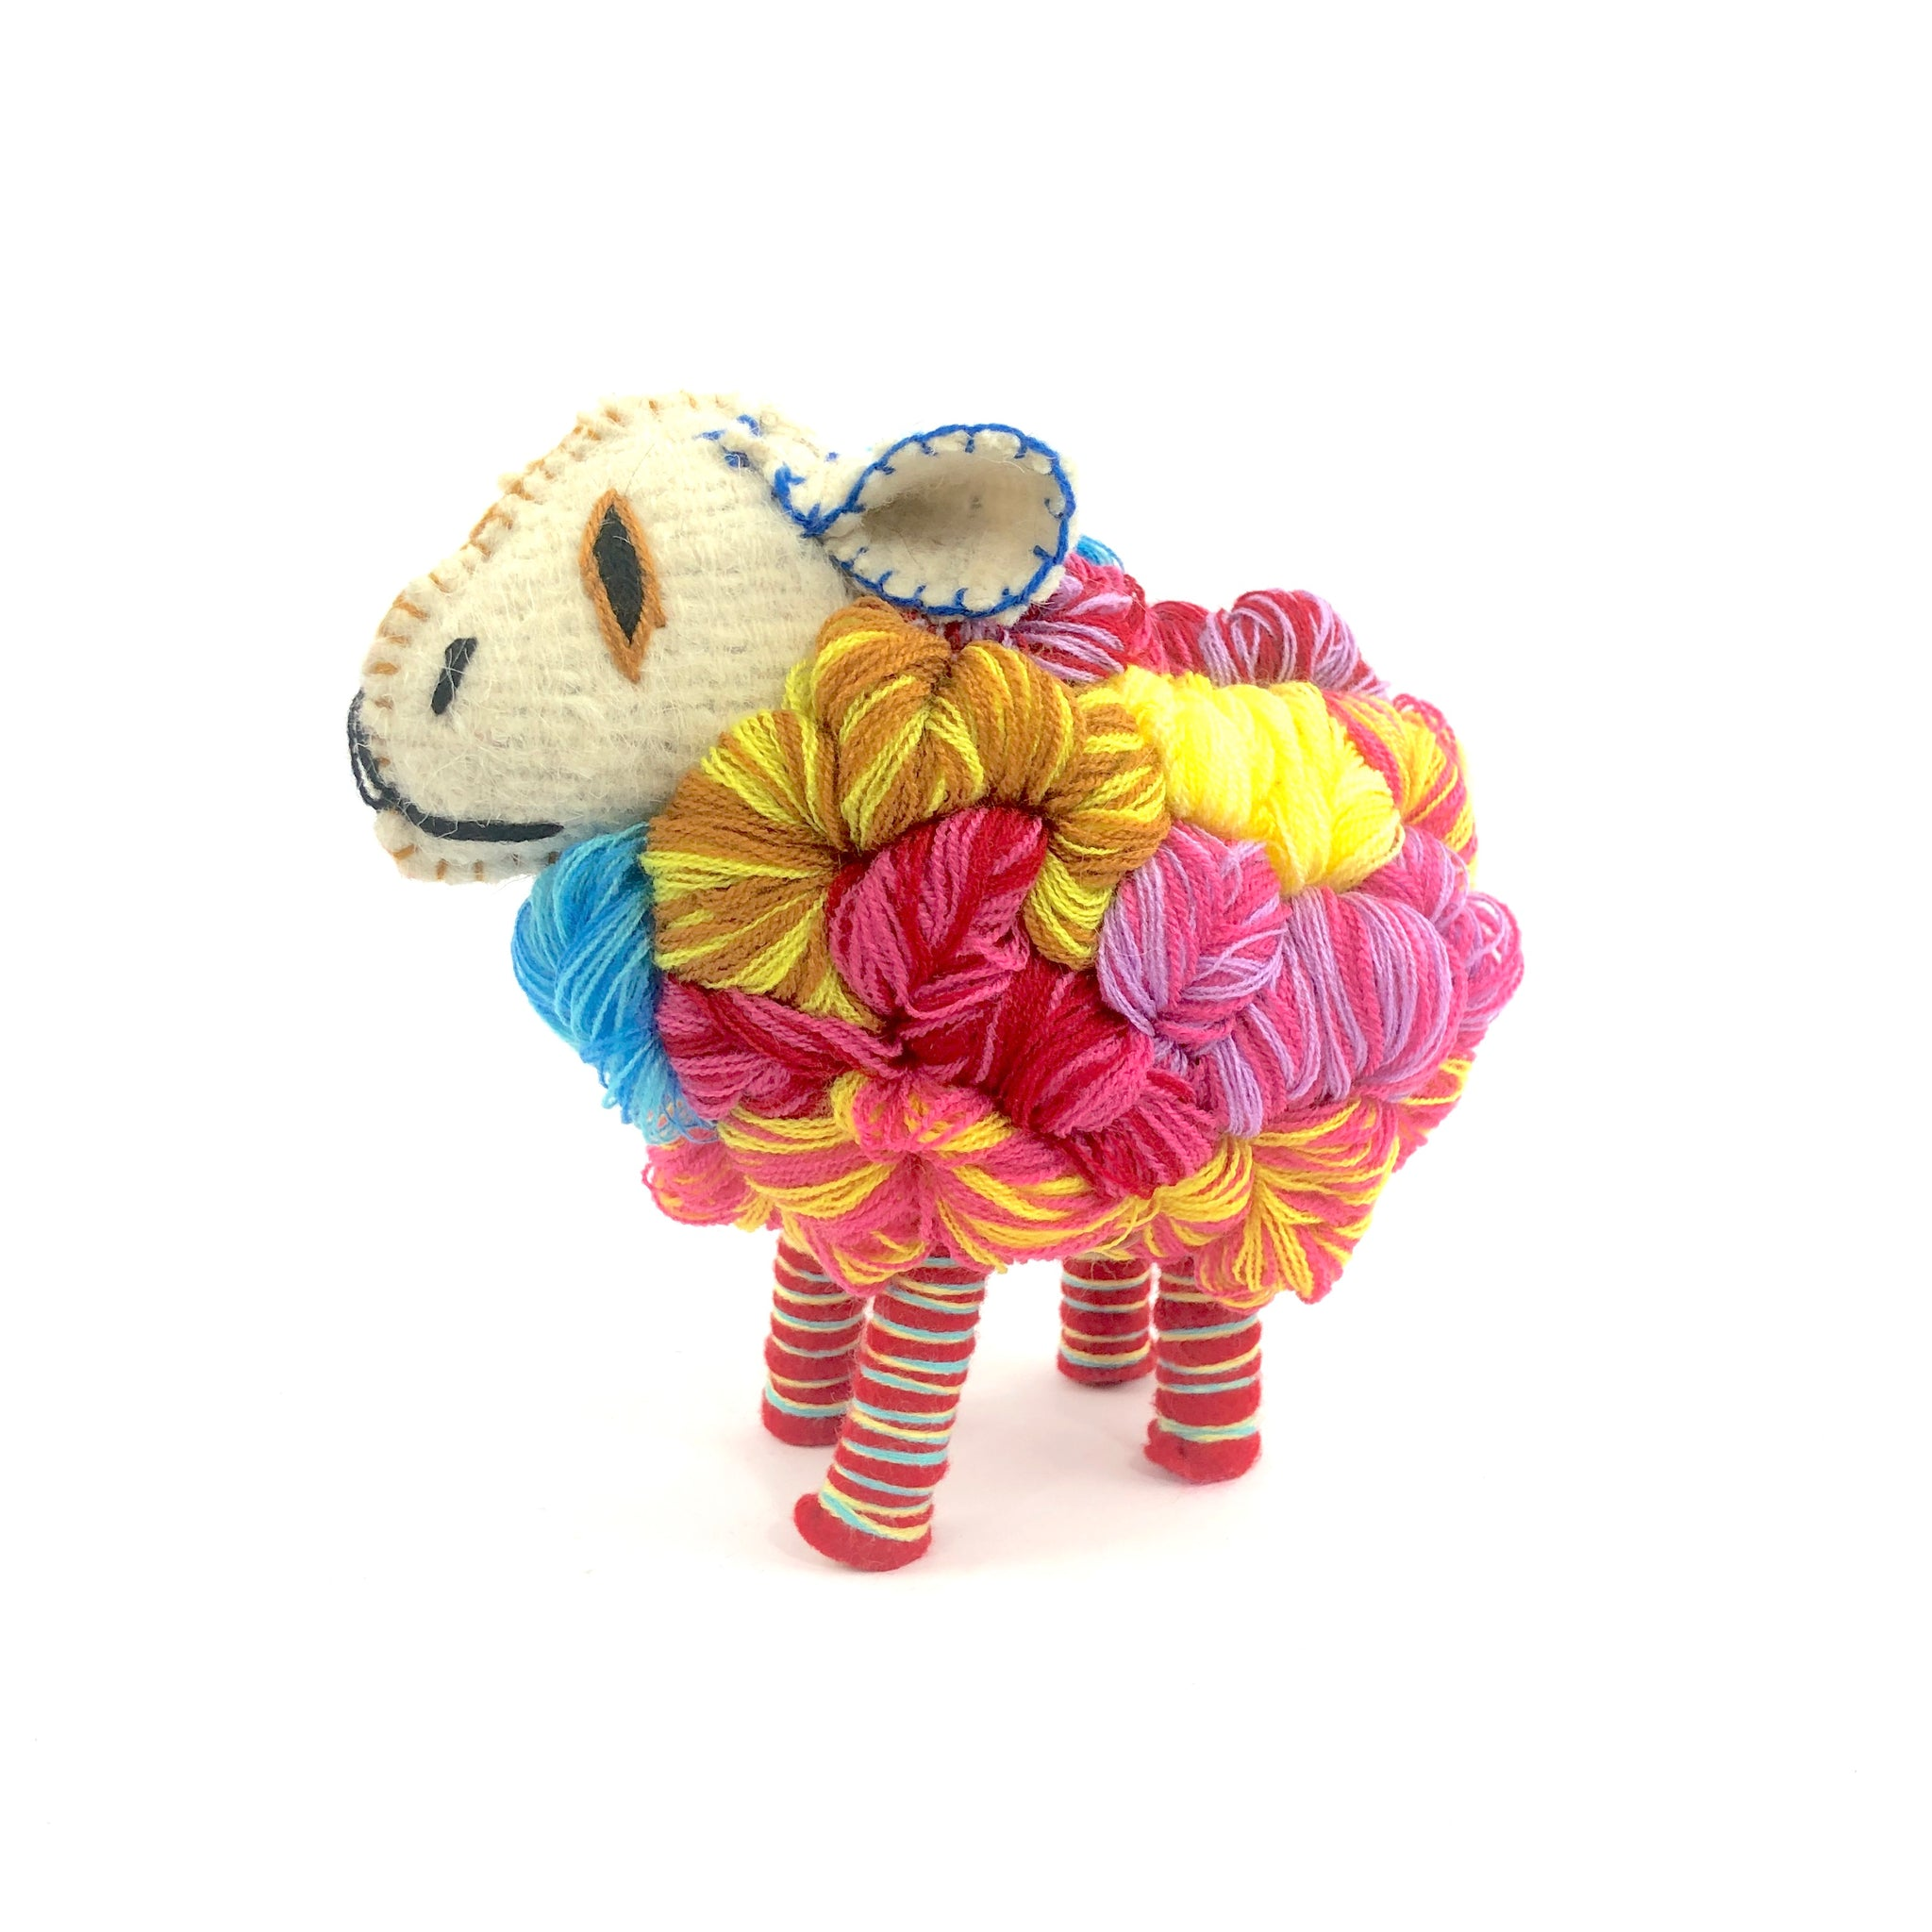 Mexican wool animals, Mexican folk art animals, Wool sheep decoration